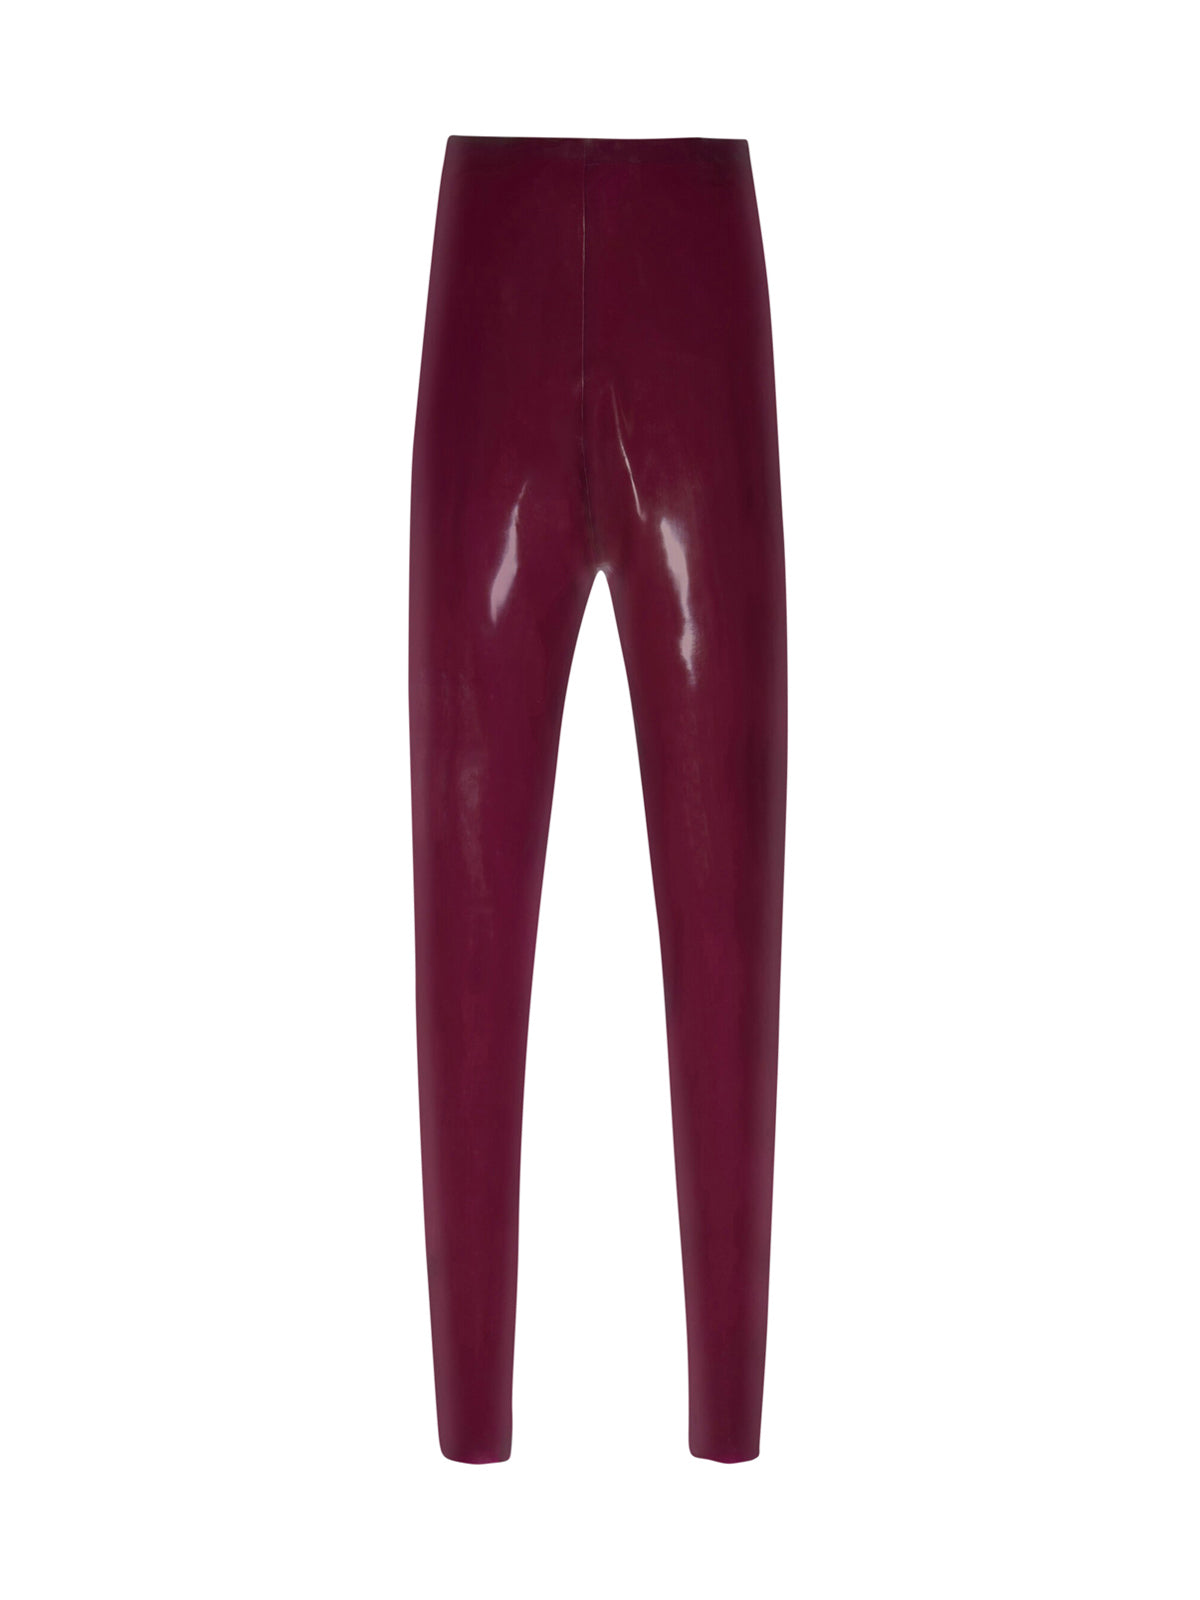 LATEX HIGH WAISTED LEGGINGS